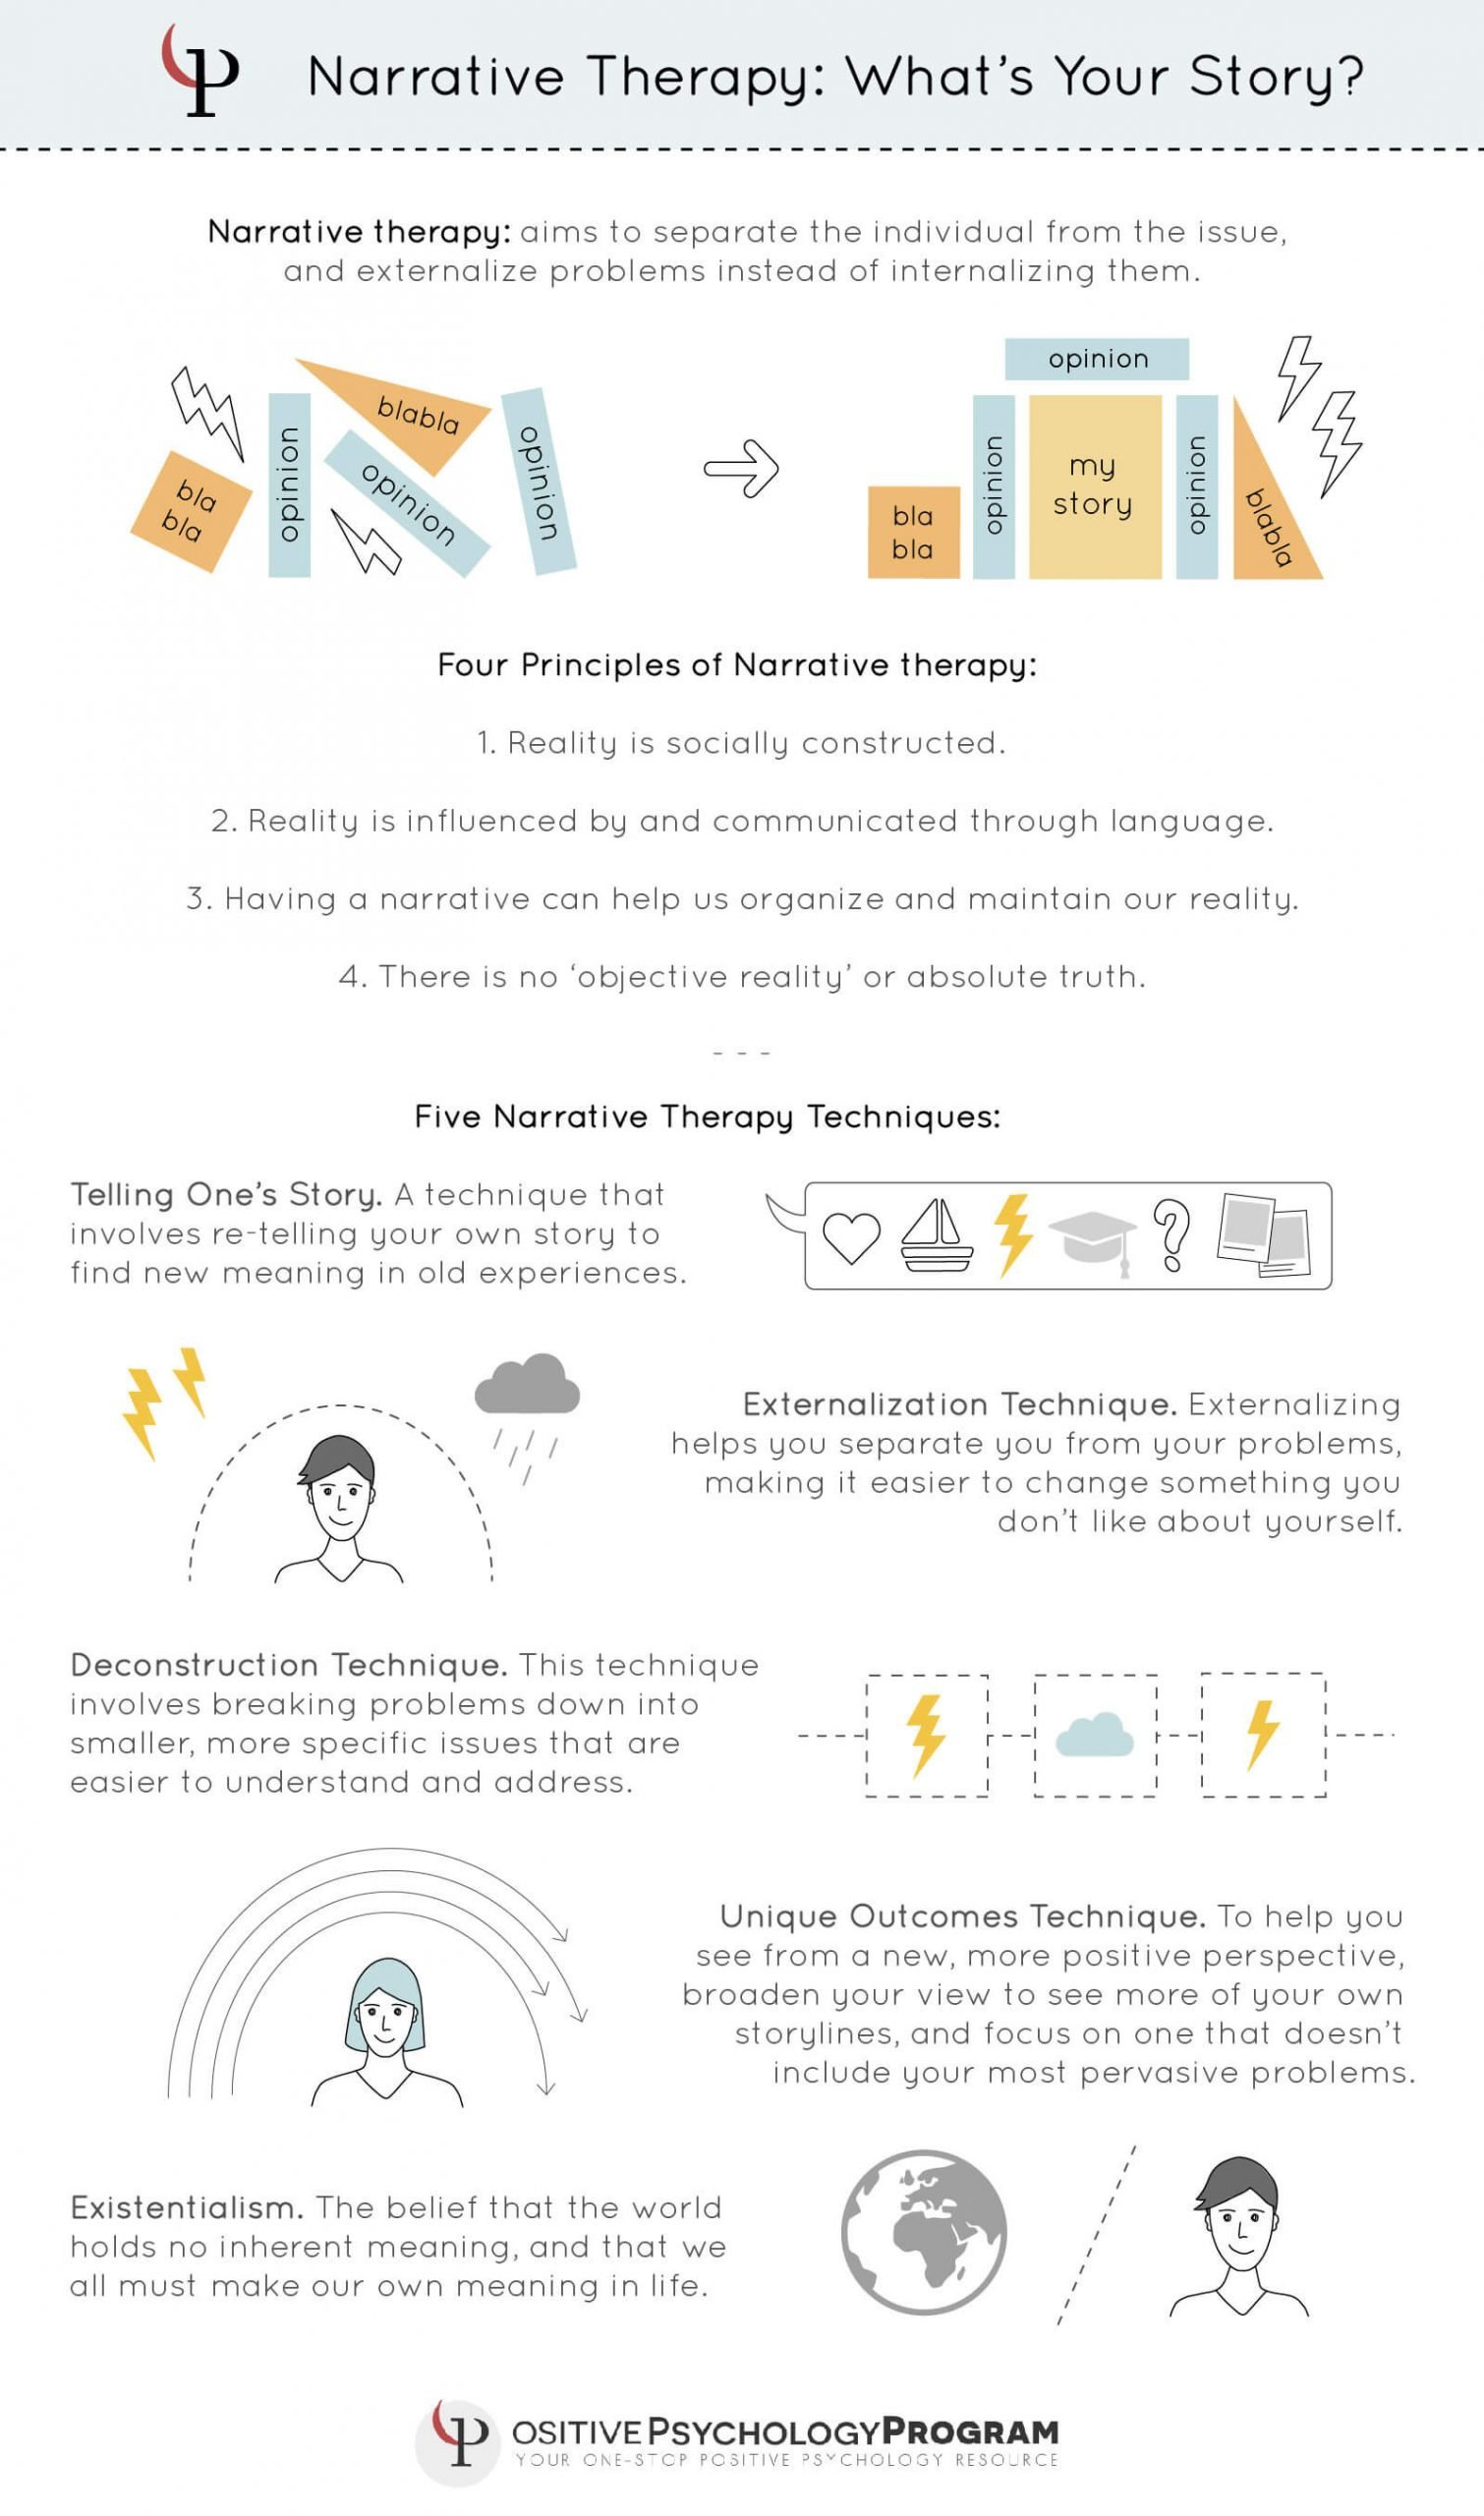 Family therapy Communication Worksheets 19 Narrative therapy Techniques Interventions Worksheets